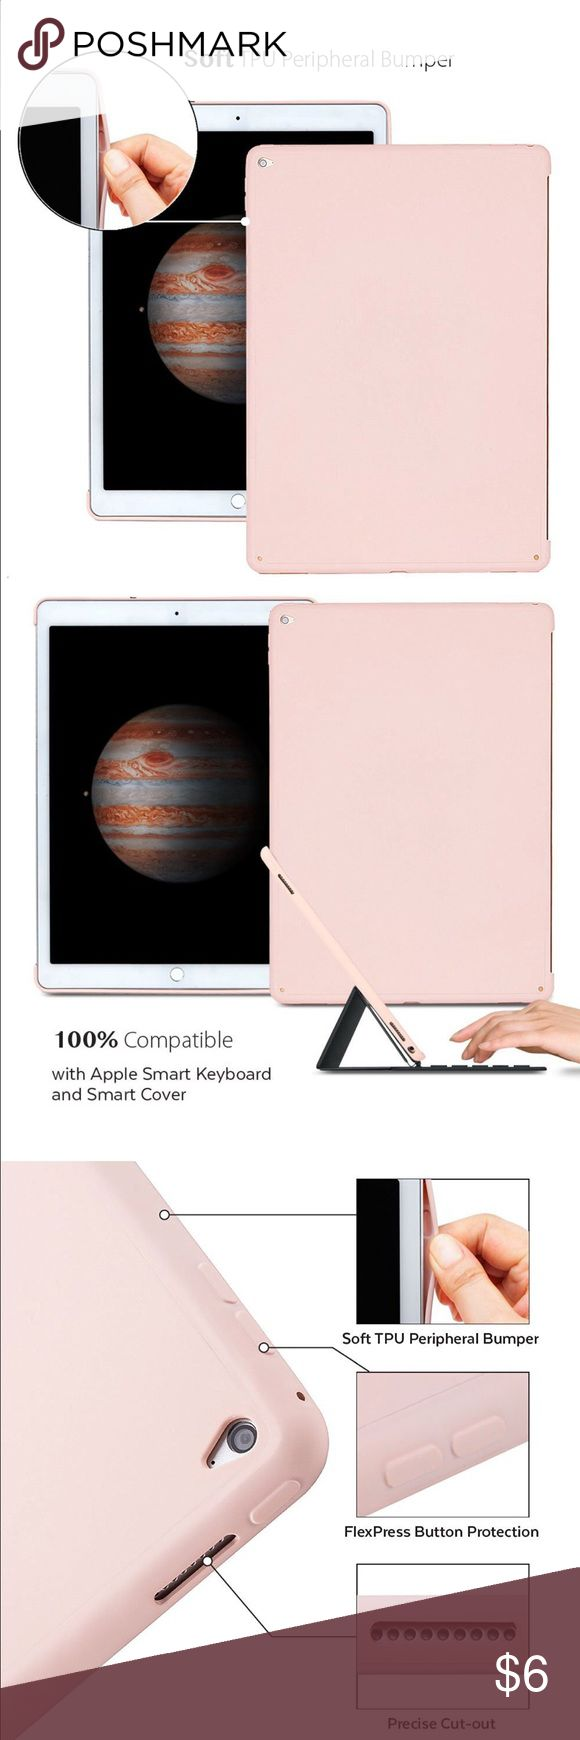 Case for Apple iPad Pro 12.9 inch  - [Baby Pink] NEW!! Case is designed to give your iPad Pro 12.9 all-round protection from bumps and scratches. It is easy to install by just snap on to your device. Hard Back & Soft TPU Bumper Case is the perfect combination of style. Compatible with iPad Pro 12.9.  Smart Cover And Keyboard Compatible:  Perfect fit with Smart keyboard. It will not affect the keyboard adsorption. Camera hole cutout on the back and full access to all iPad ports / connections…